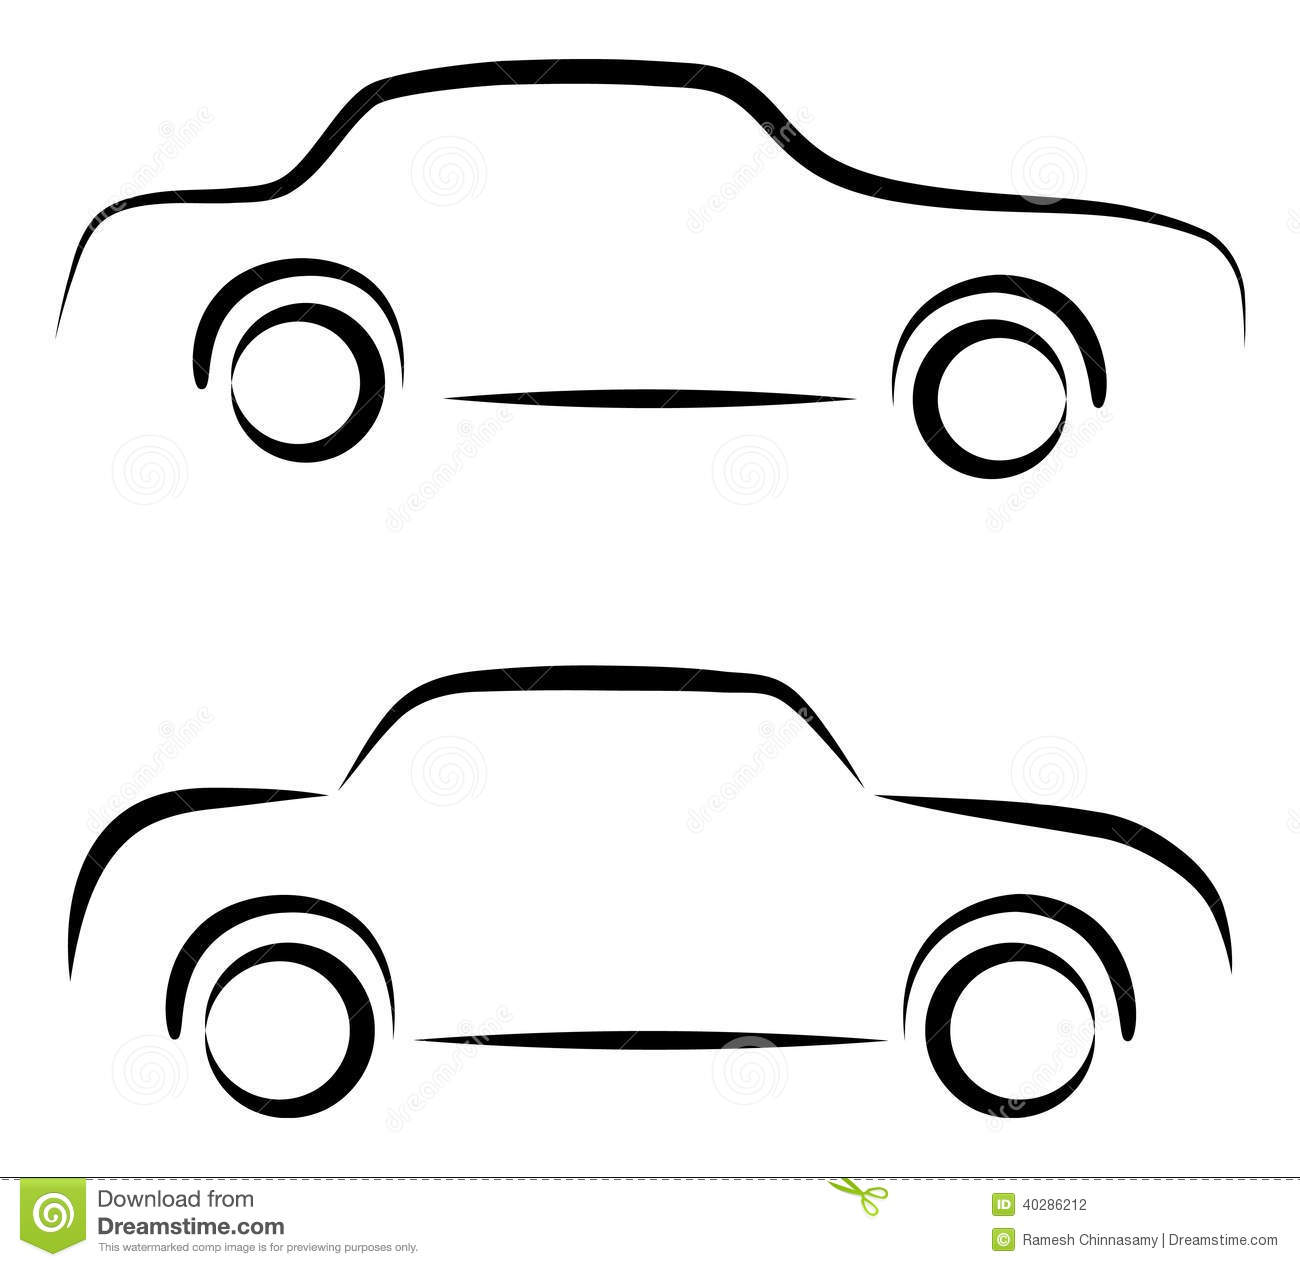 Car logo stock vector image 40286212 - Dessin de voiture simple ...